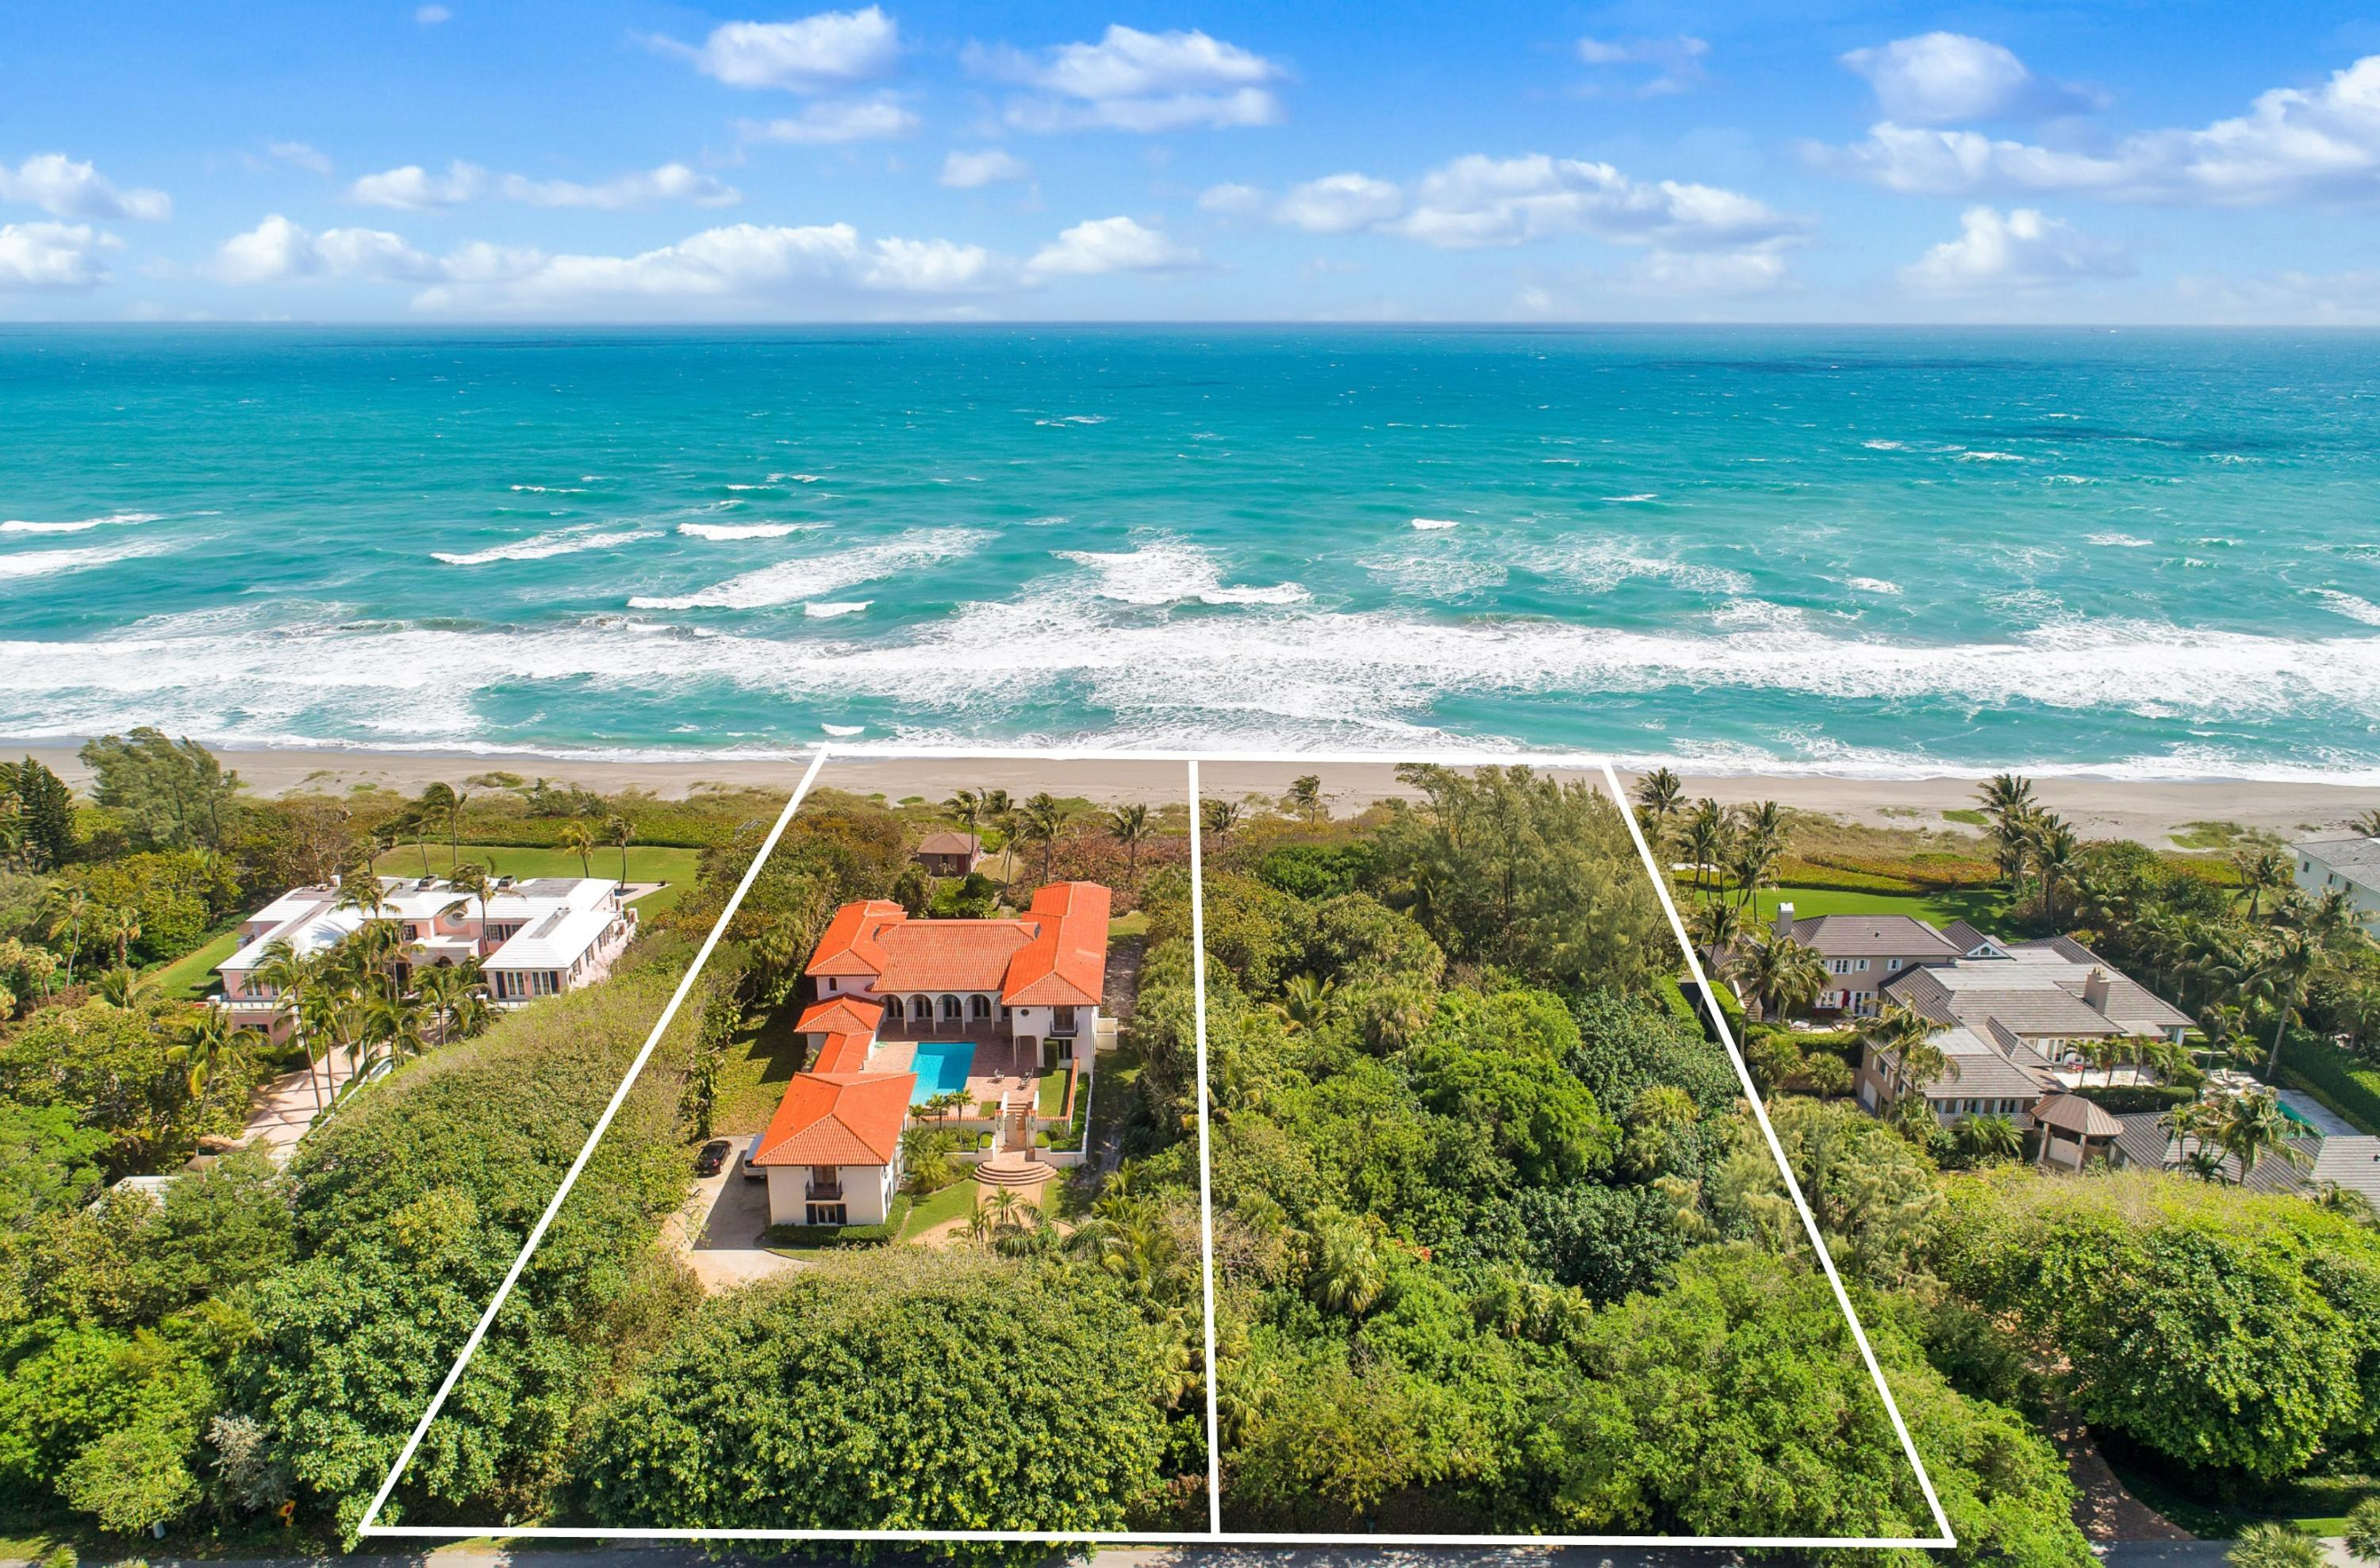 119 Beach Road, Hobe Sound, Florida 33455, 5 Bedrooms Bedrooms, ,9 BathroomsBathrooms,Single Family,For Sale,JUPITER ISLAND,Beach,RX-10609870